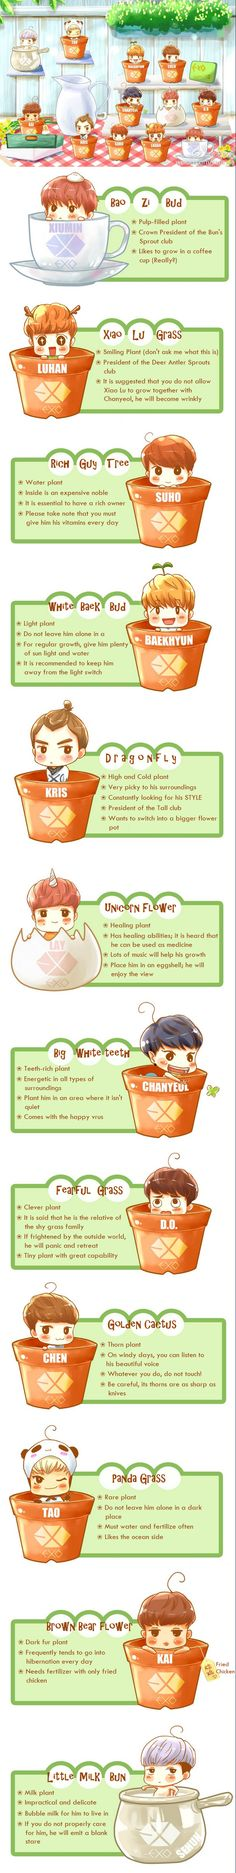 Exo as plants chibi/ I WANT ALL OF THEM...I'LL FIND THEM AND TAKE THEM AND TAKE CARE OF  THEM <3 <3 <3 <3